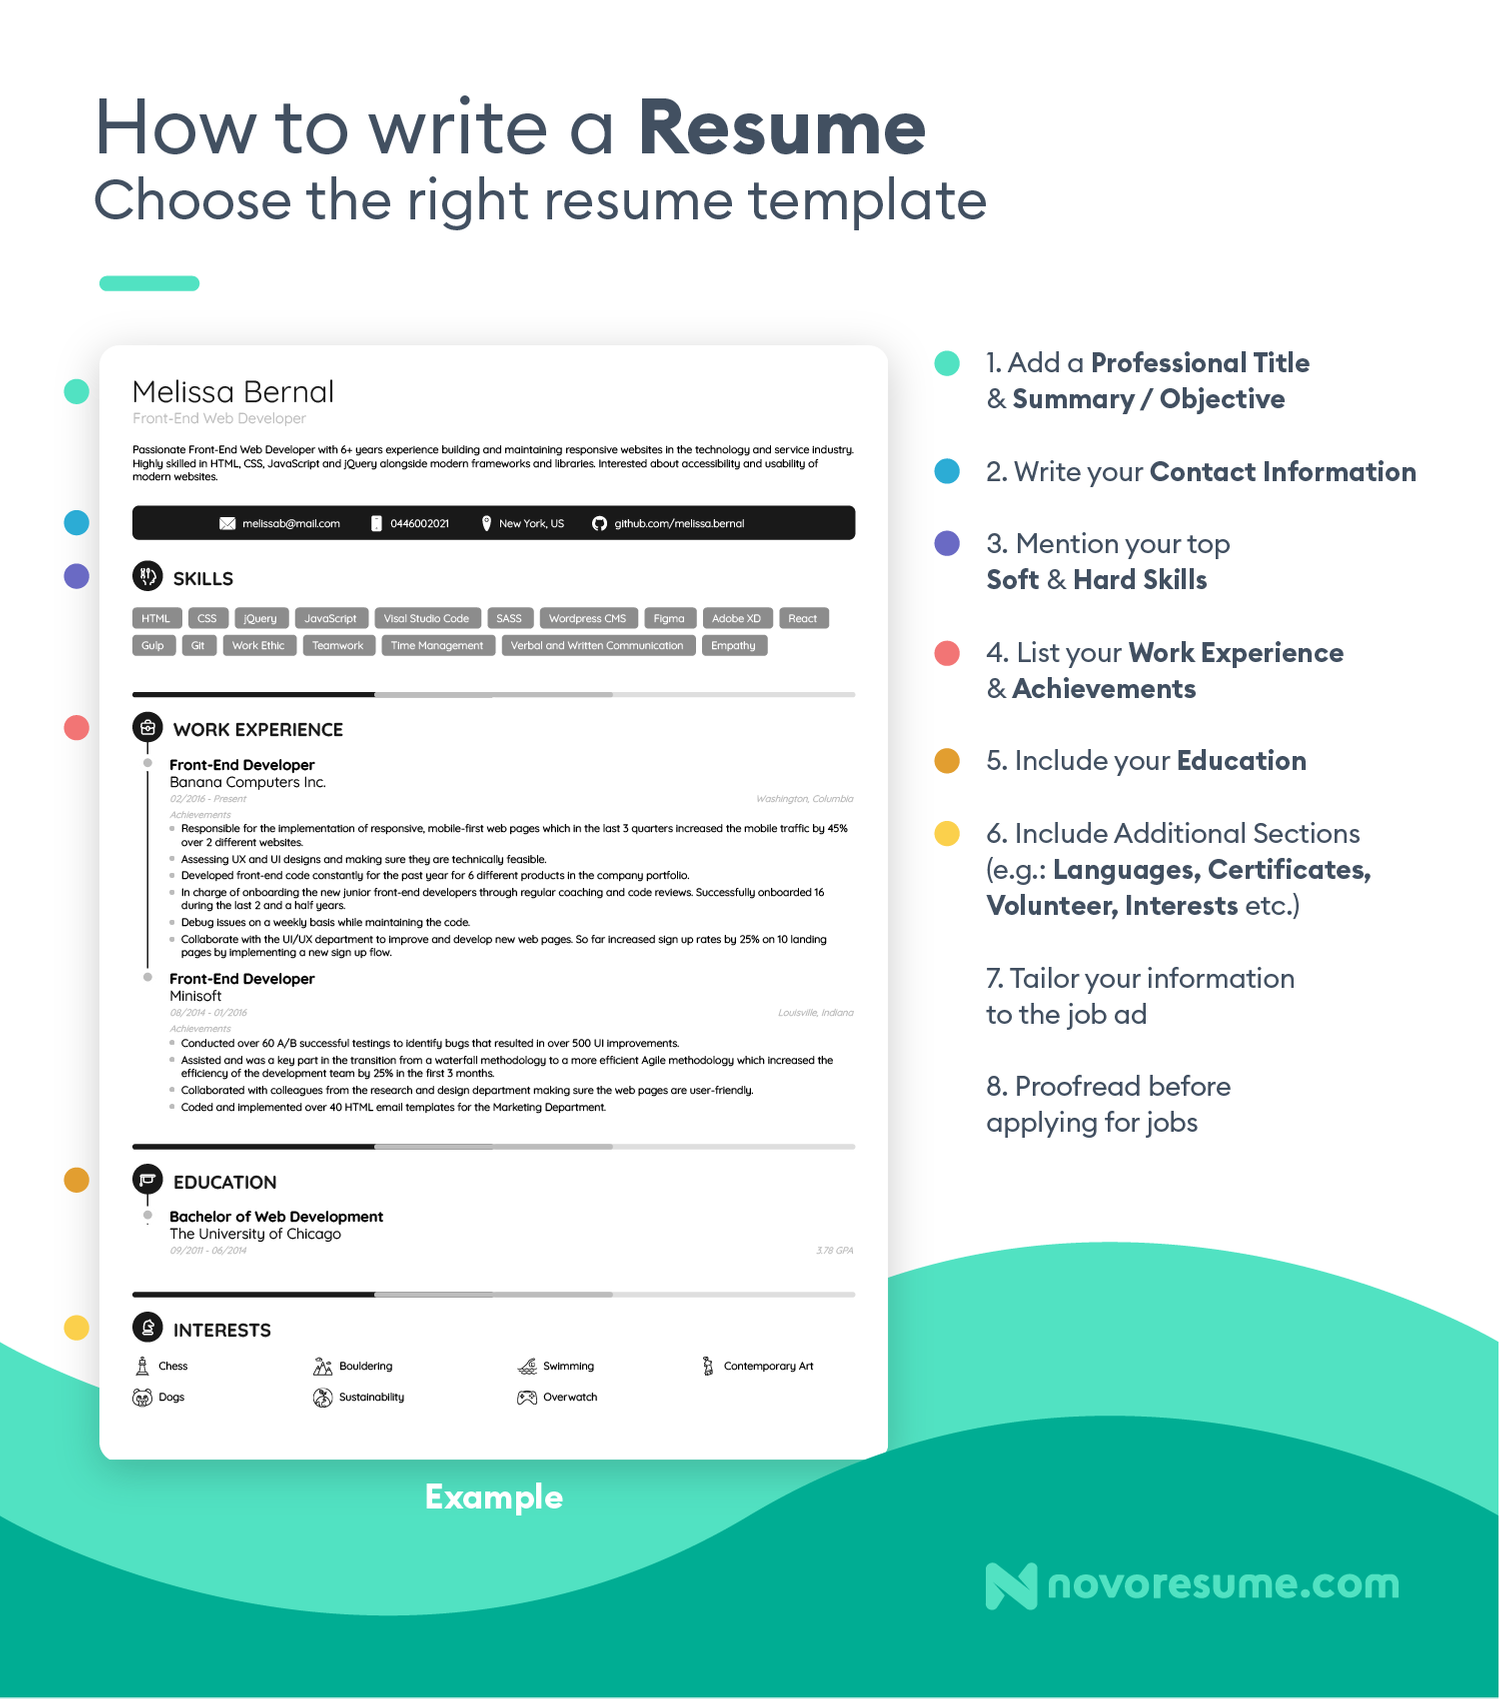 how to write a resume in 2018 guide for beginner